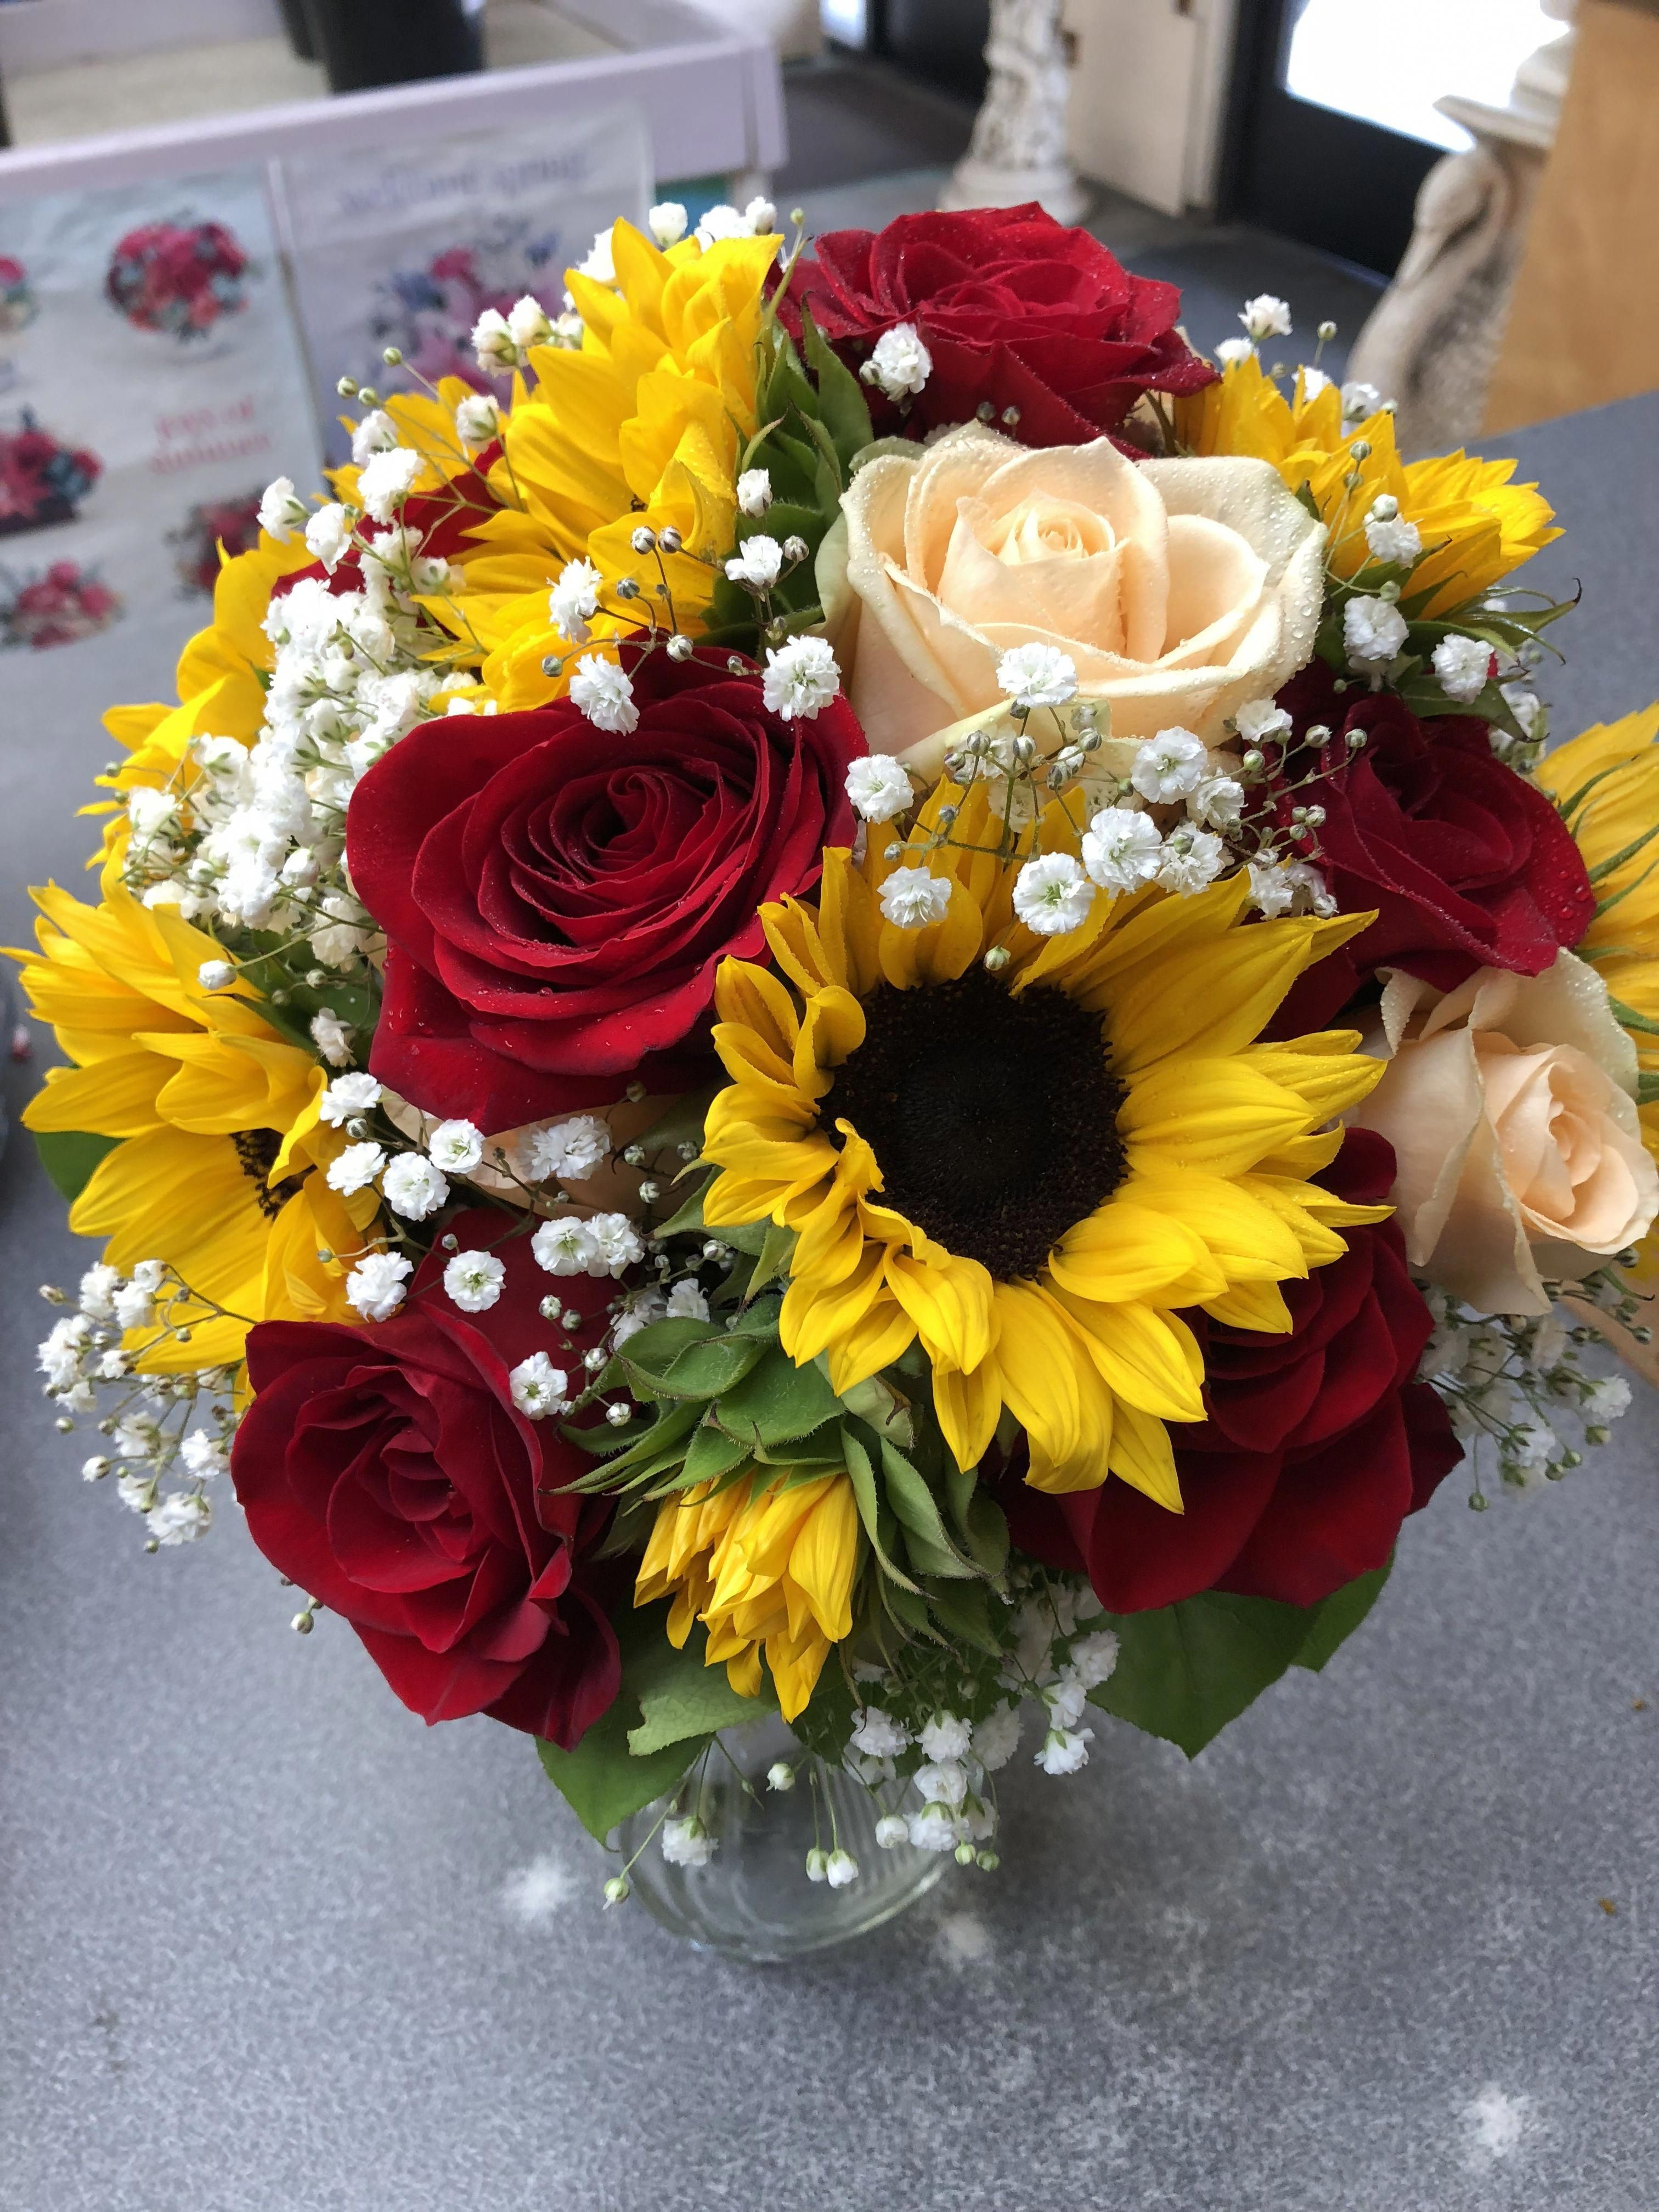 Daisy's wedding bouquet... Red roses, Sunflowers and